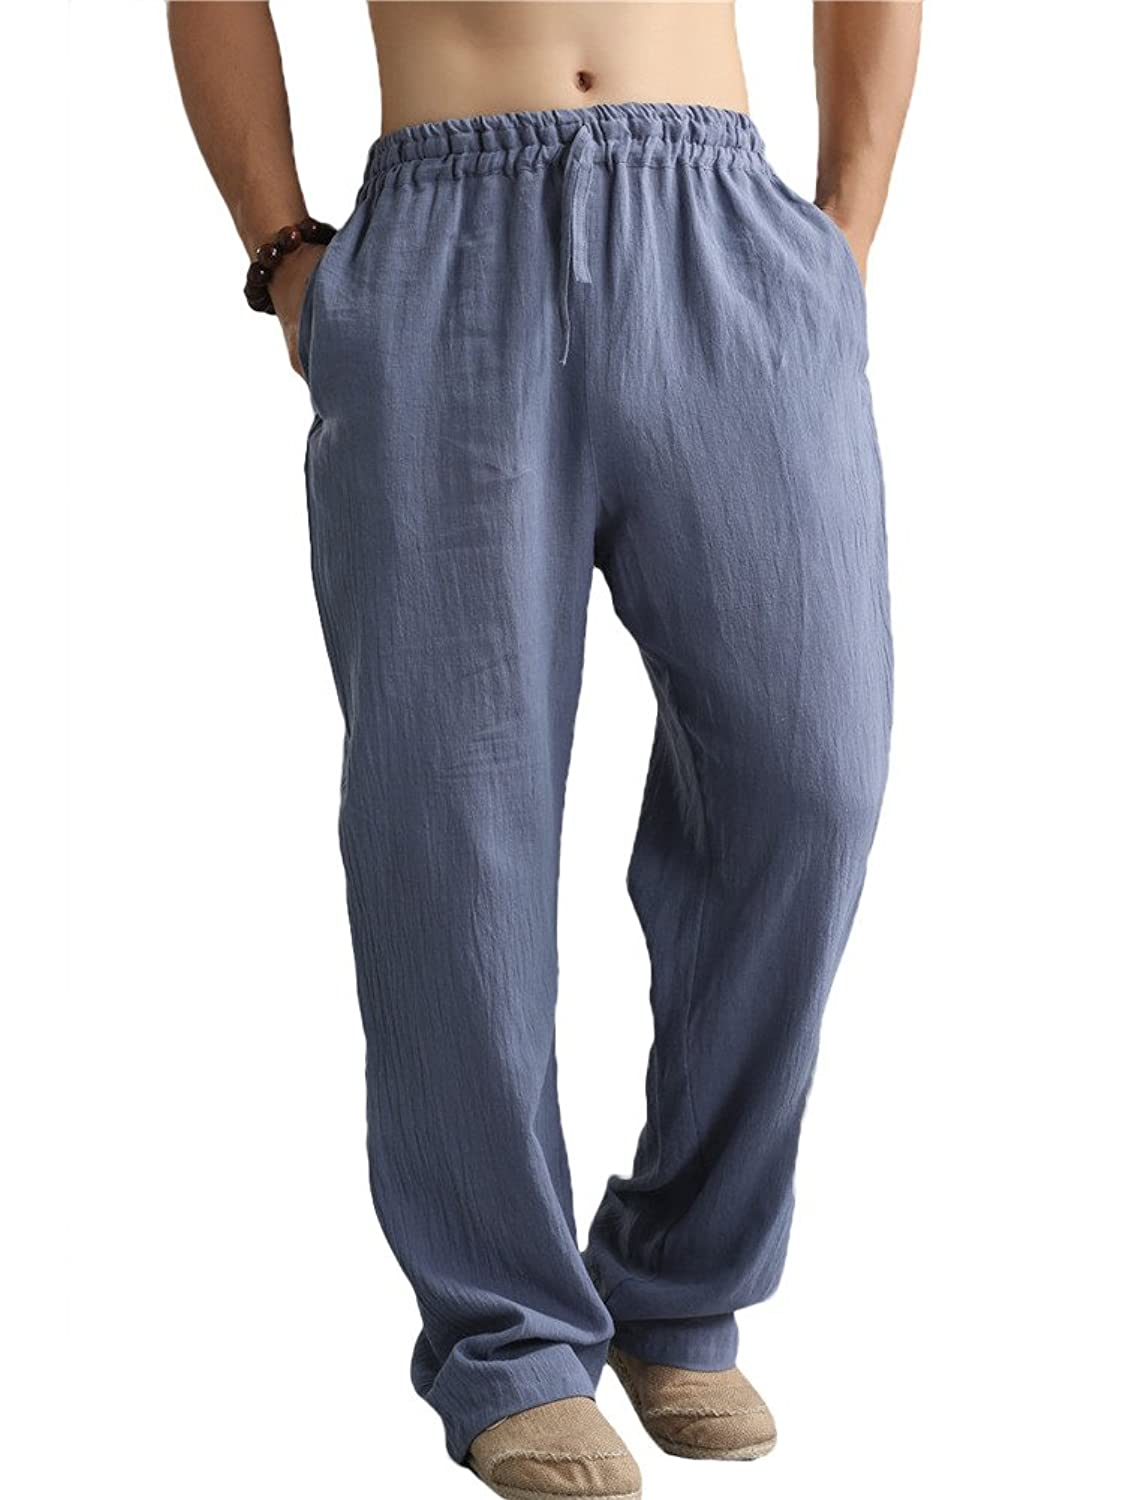 MatchLife Men's New Linen Casual Spring Summer Pants with Pockets